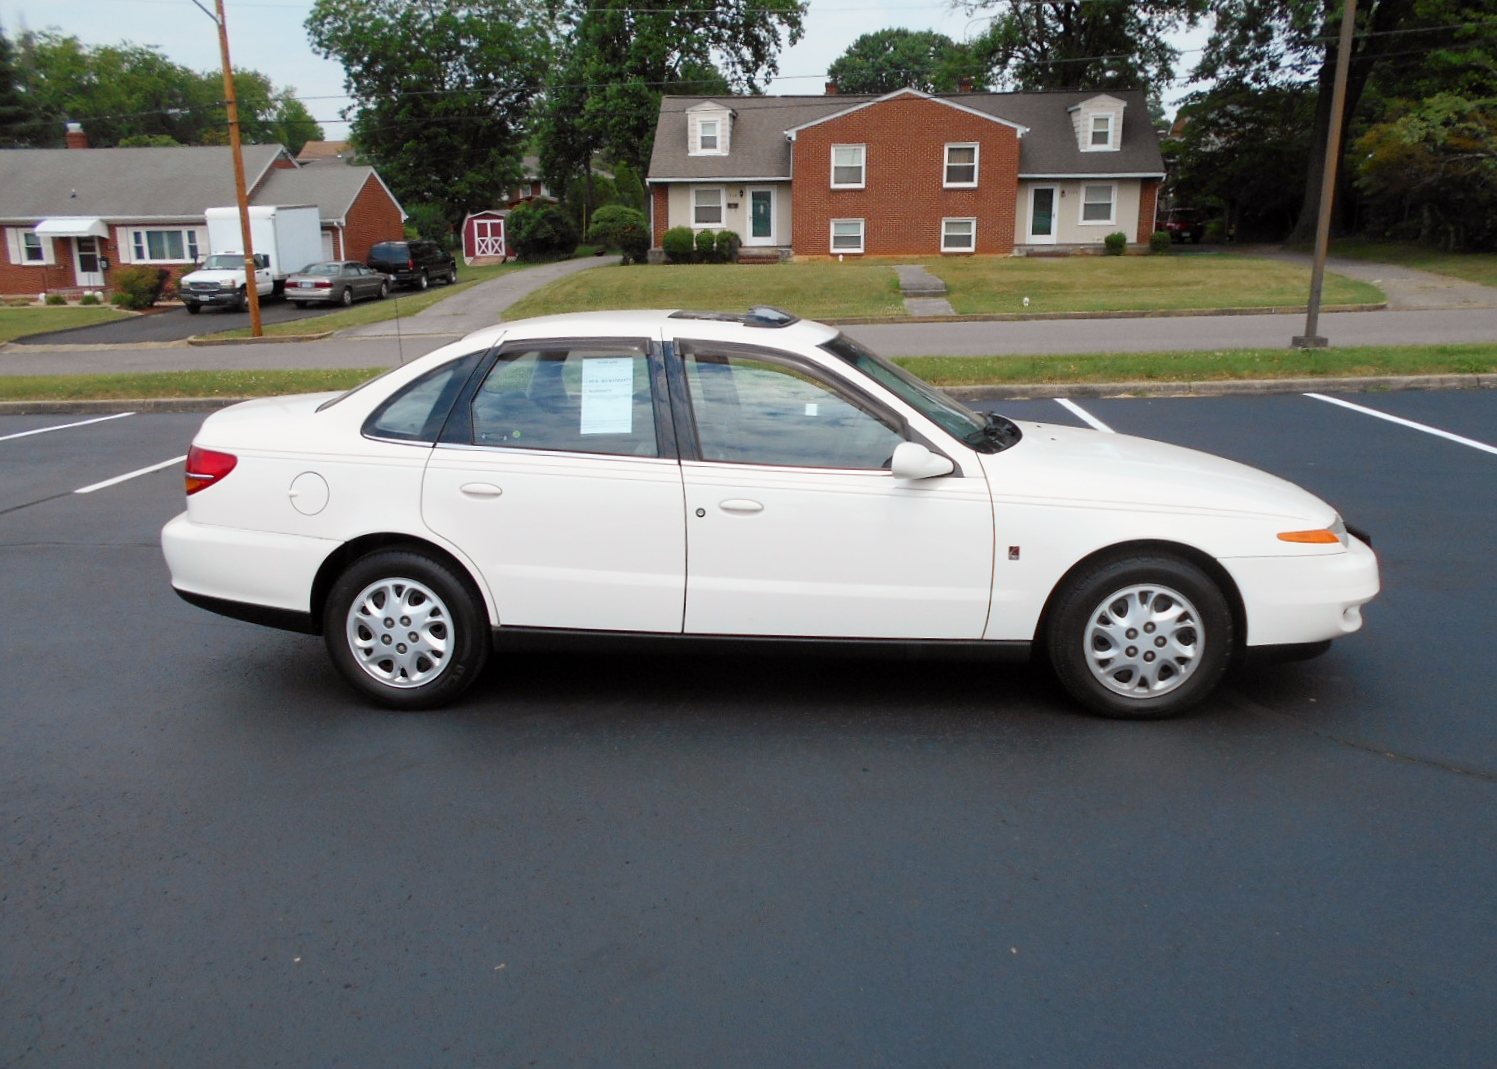 2002 Saturn L200 004 2002 Saturn L200 004 – Automobile ...